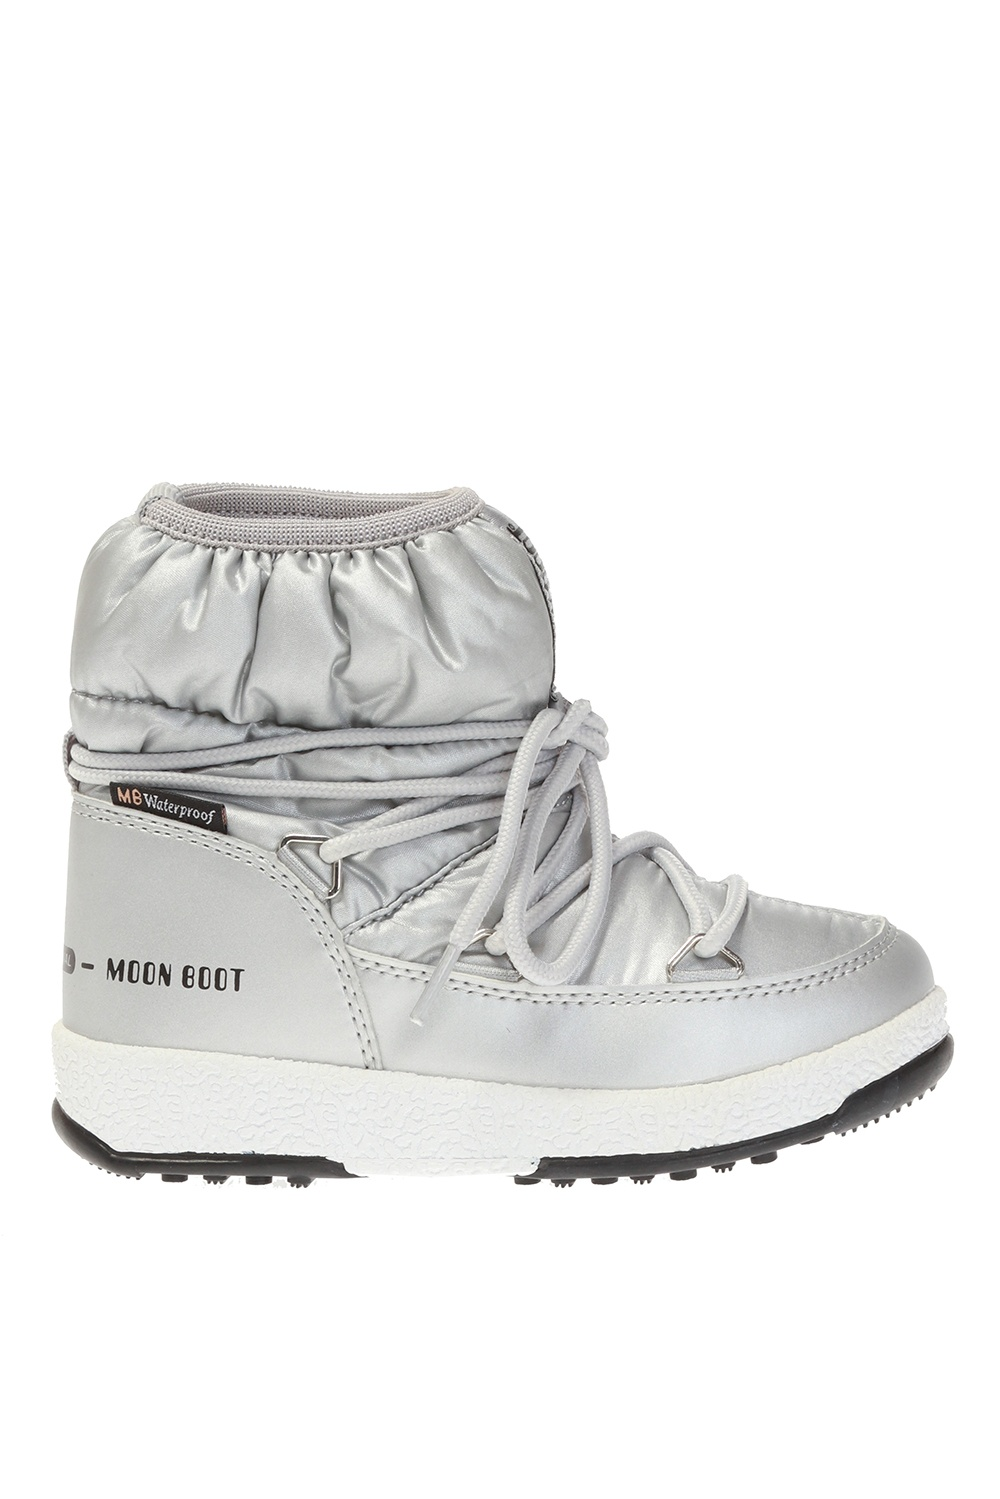 Moon Boot Kids Śniegowce 'Low Nylon'